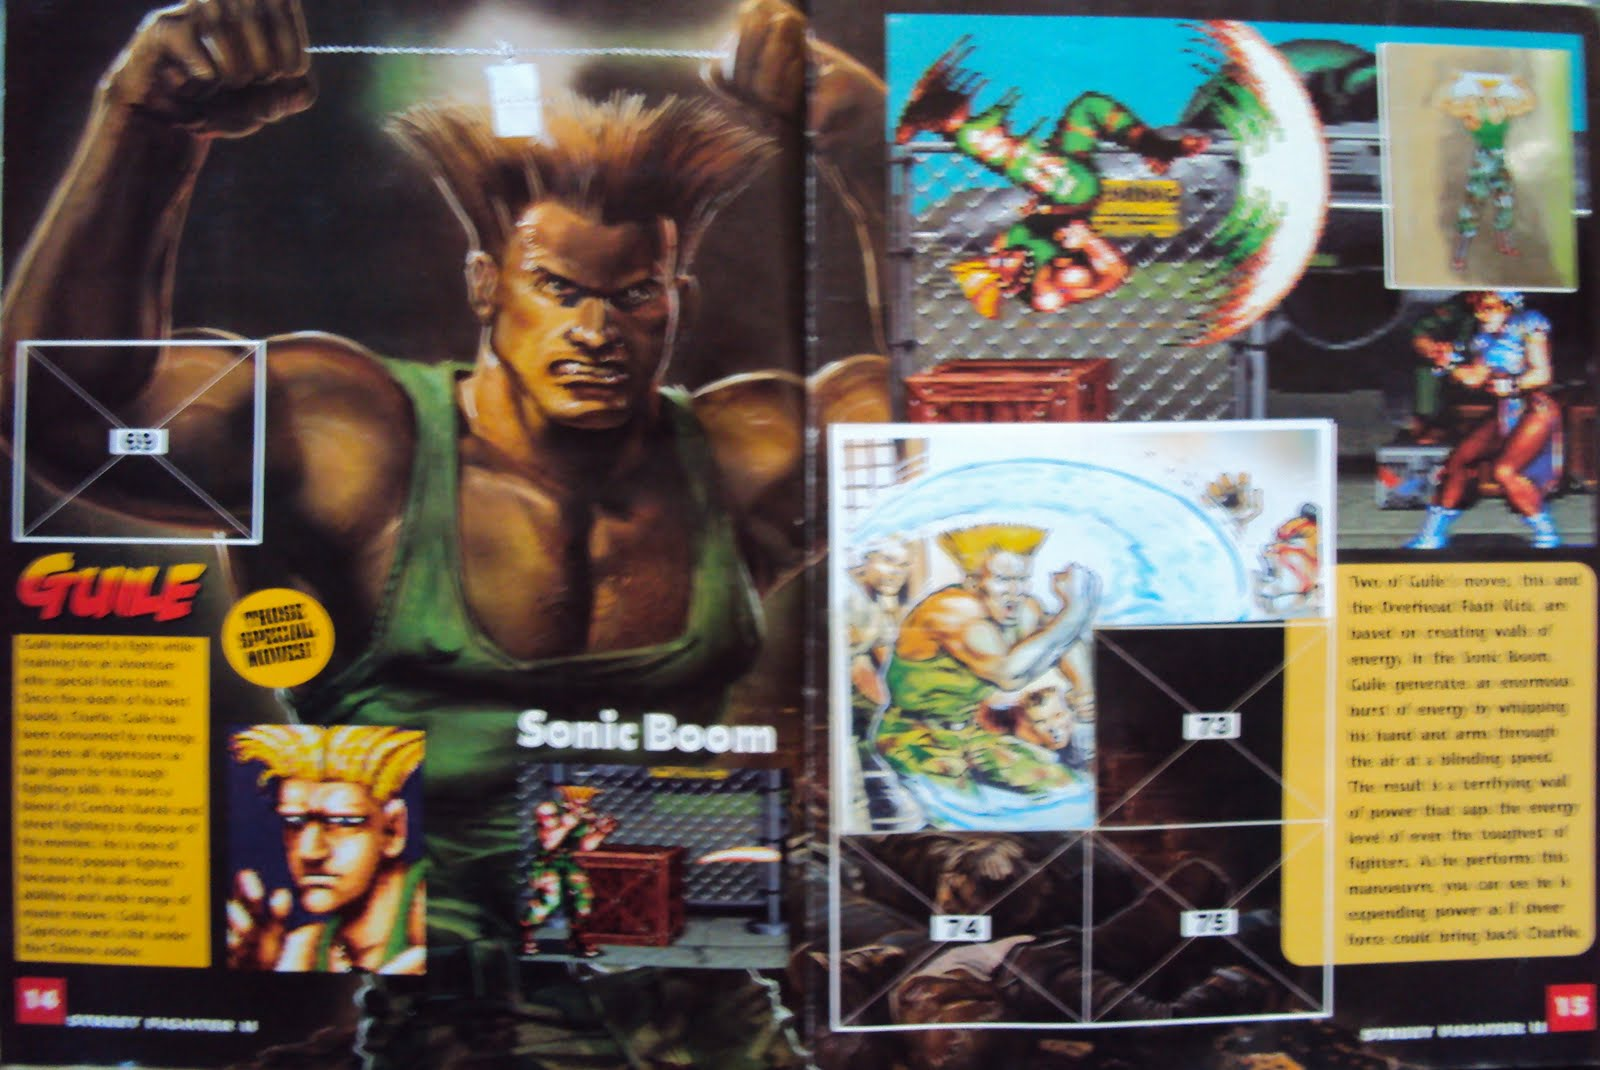 On The End Of A Quill Street Fighter 2 Super Street Fighter 2